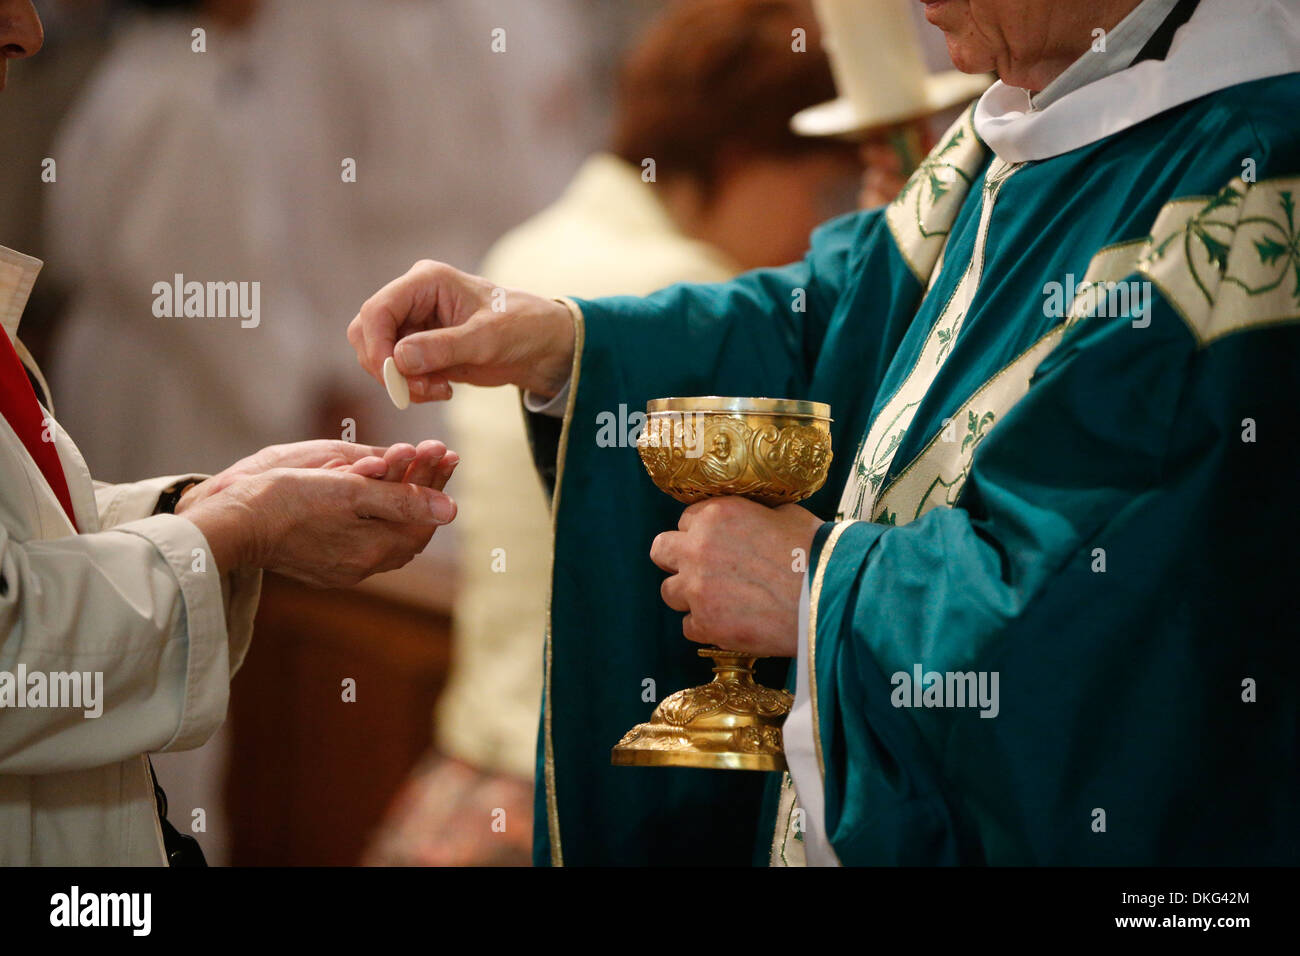 Catholic Mass, Eucharist, Villemomble, Seine-Saint-Denis, France, Europe - Stock Image